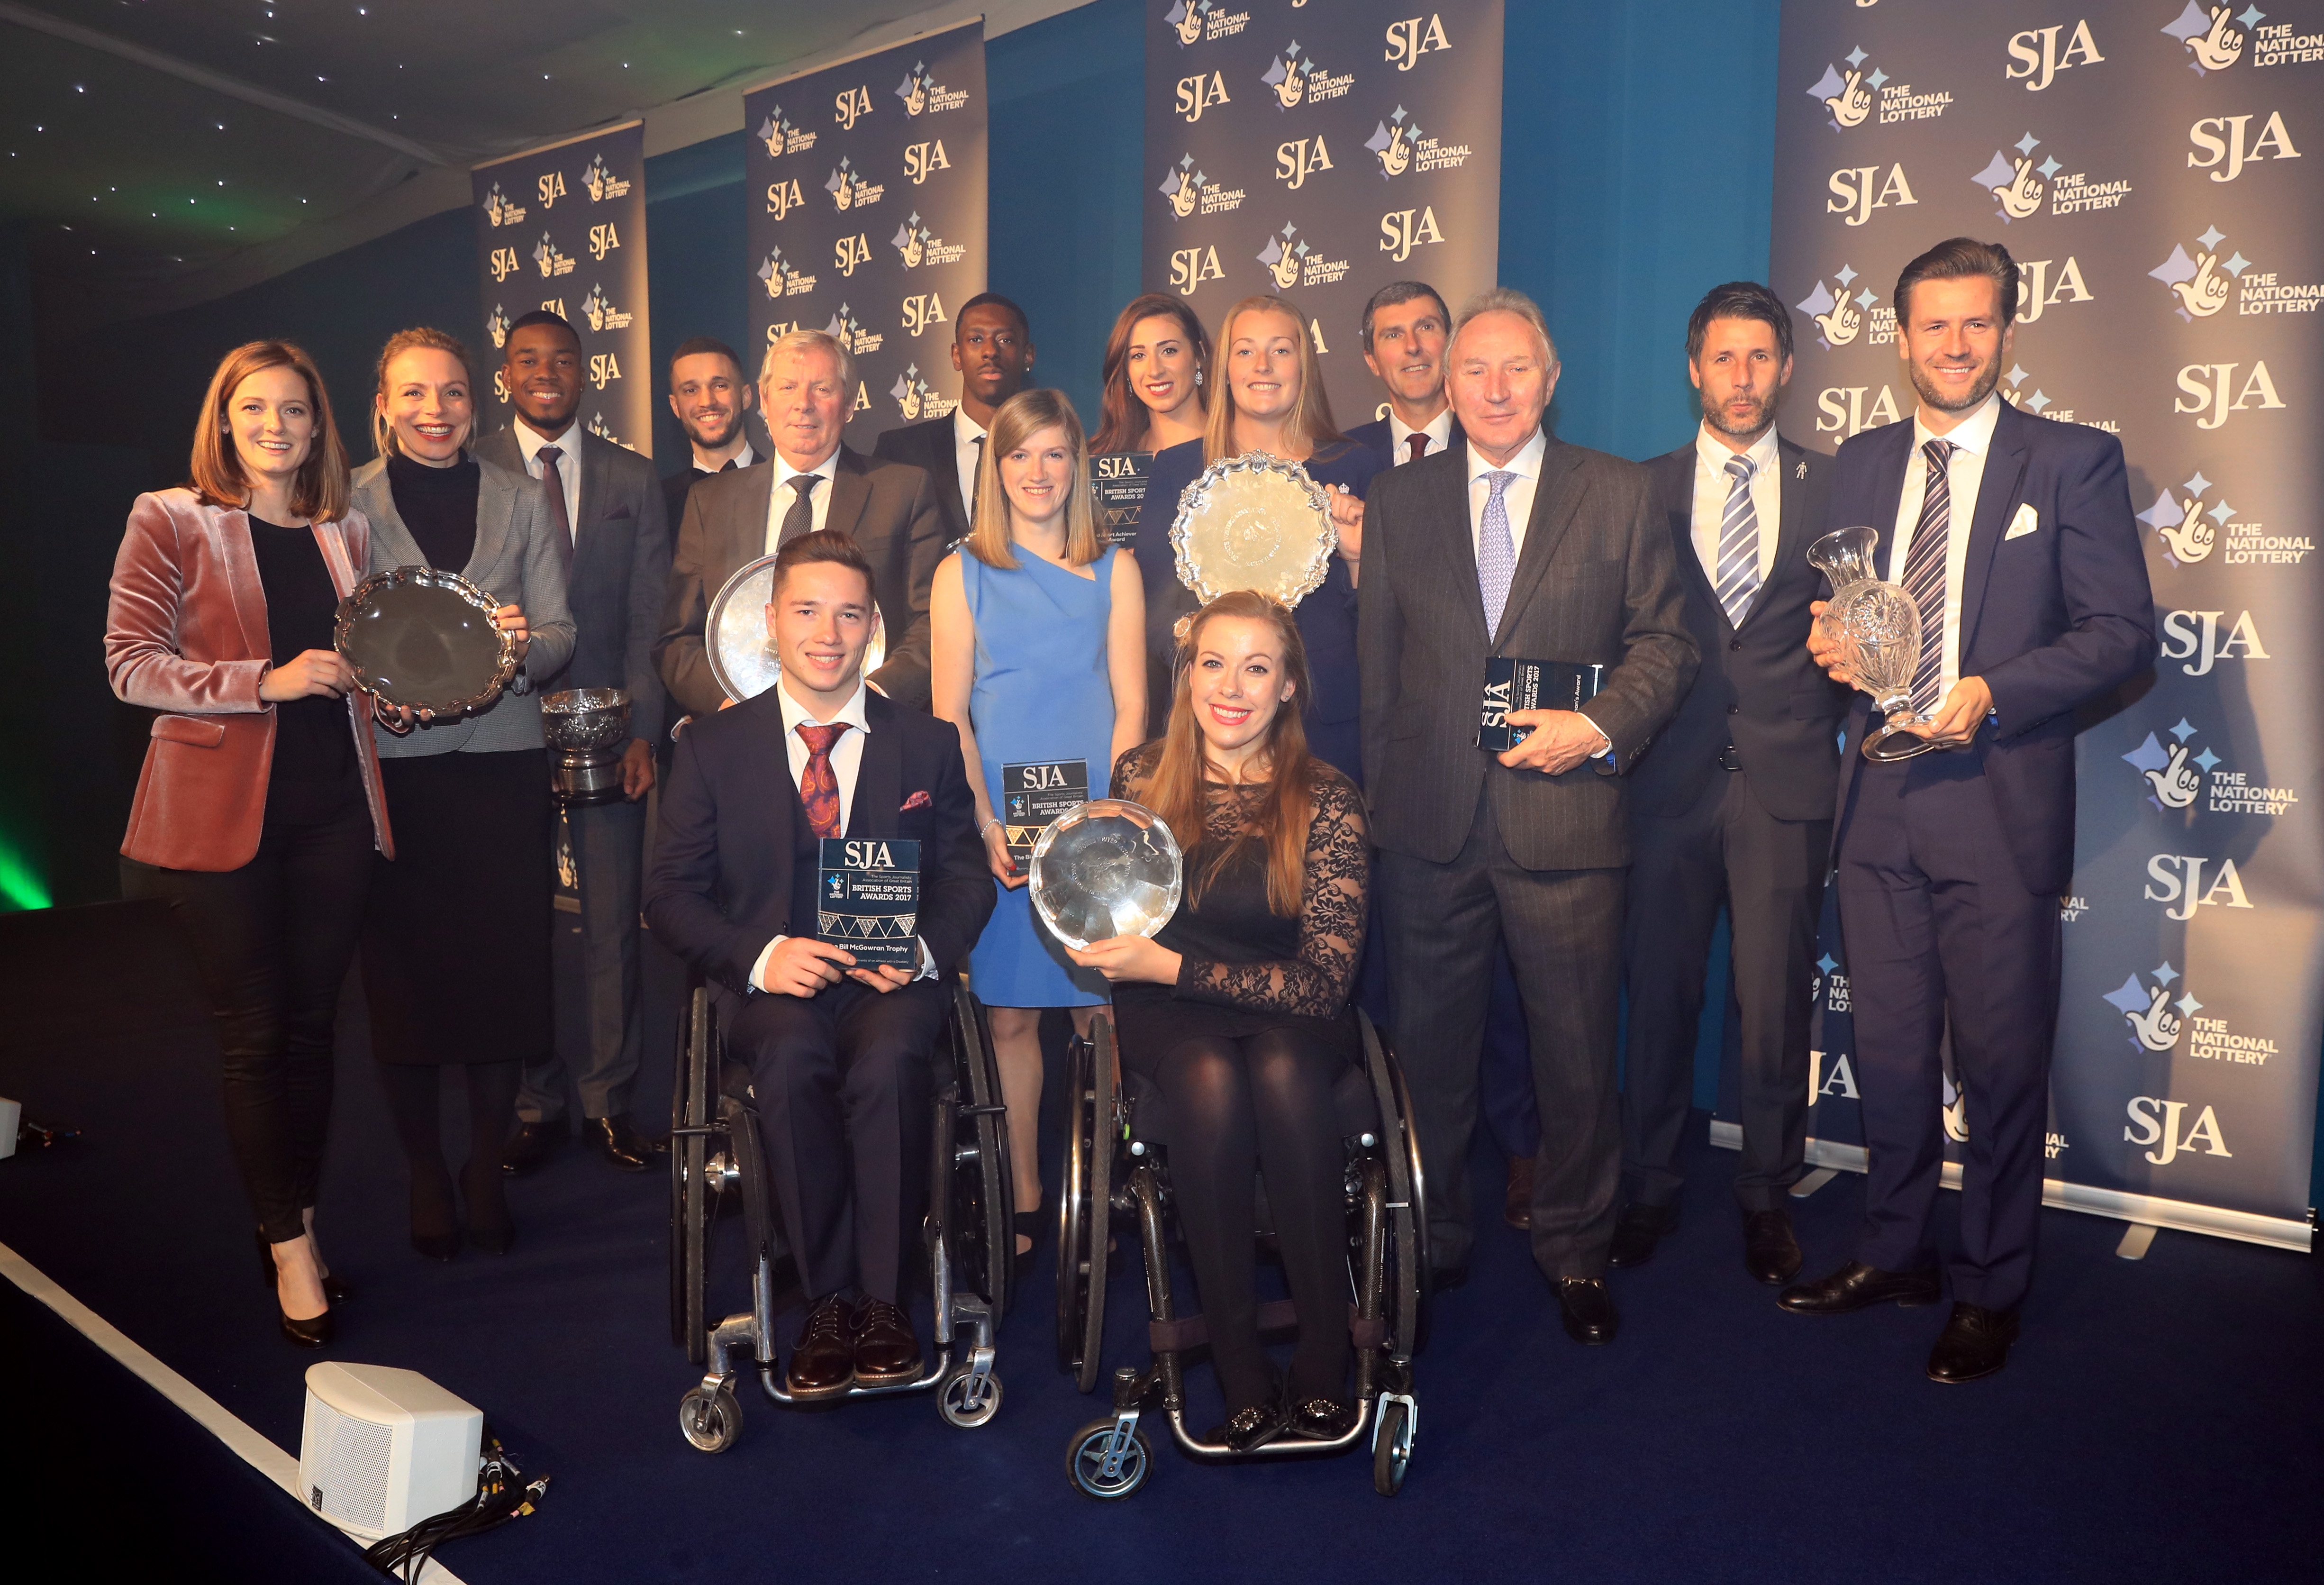 Froome, Cockroft and England women cricketers take SJA prizes